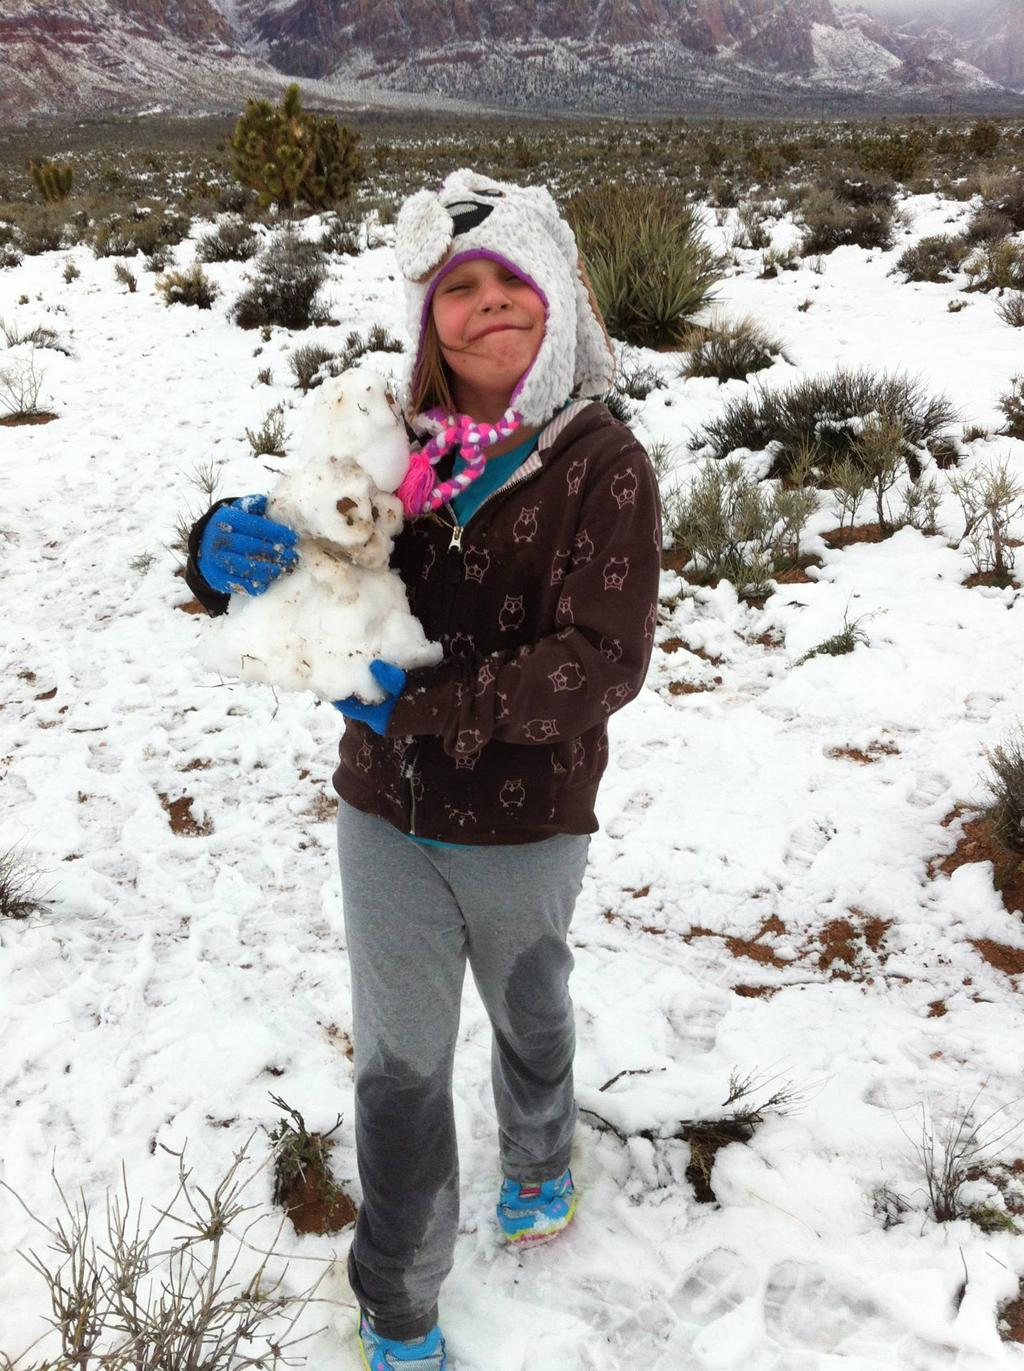 Caira playing in the snow at Red Rock